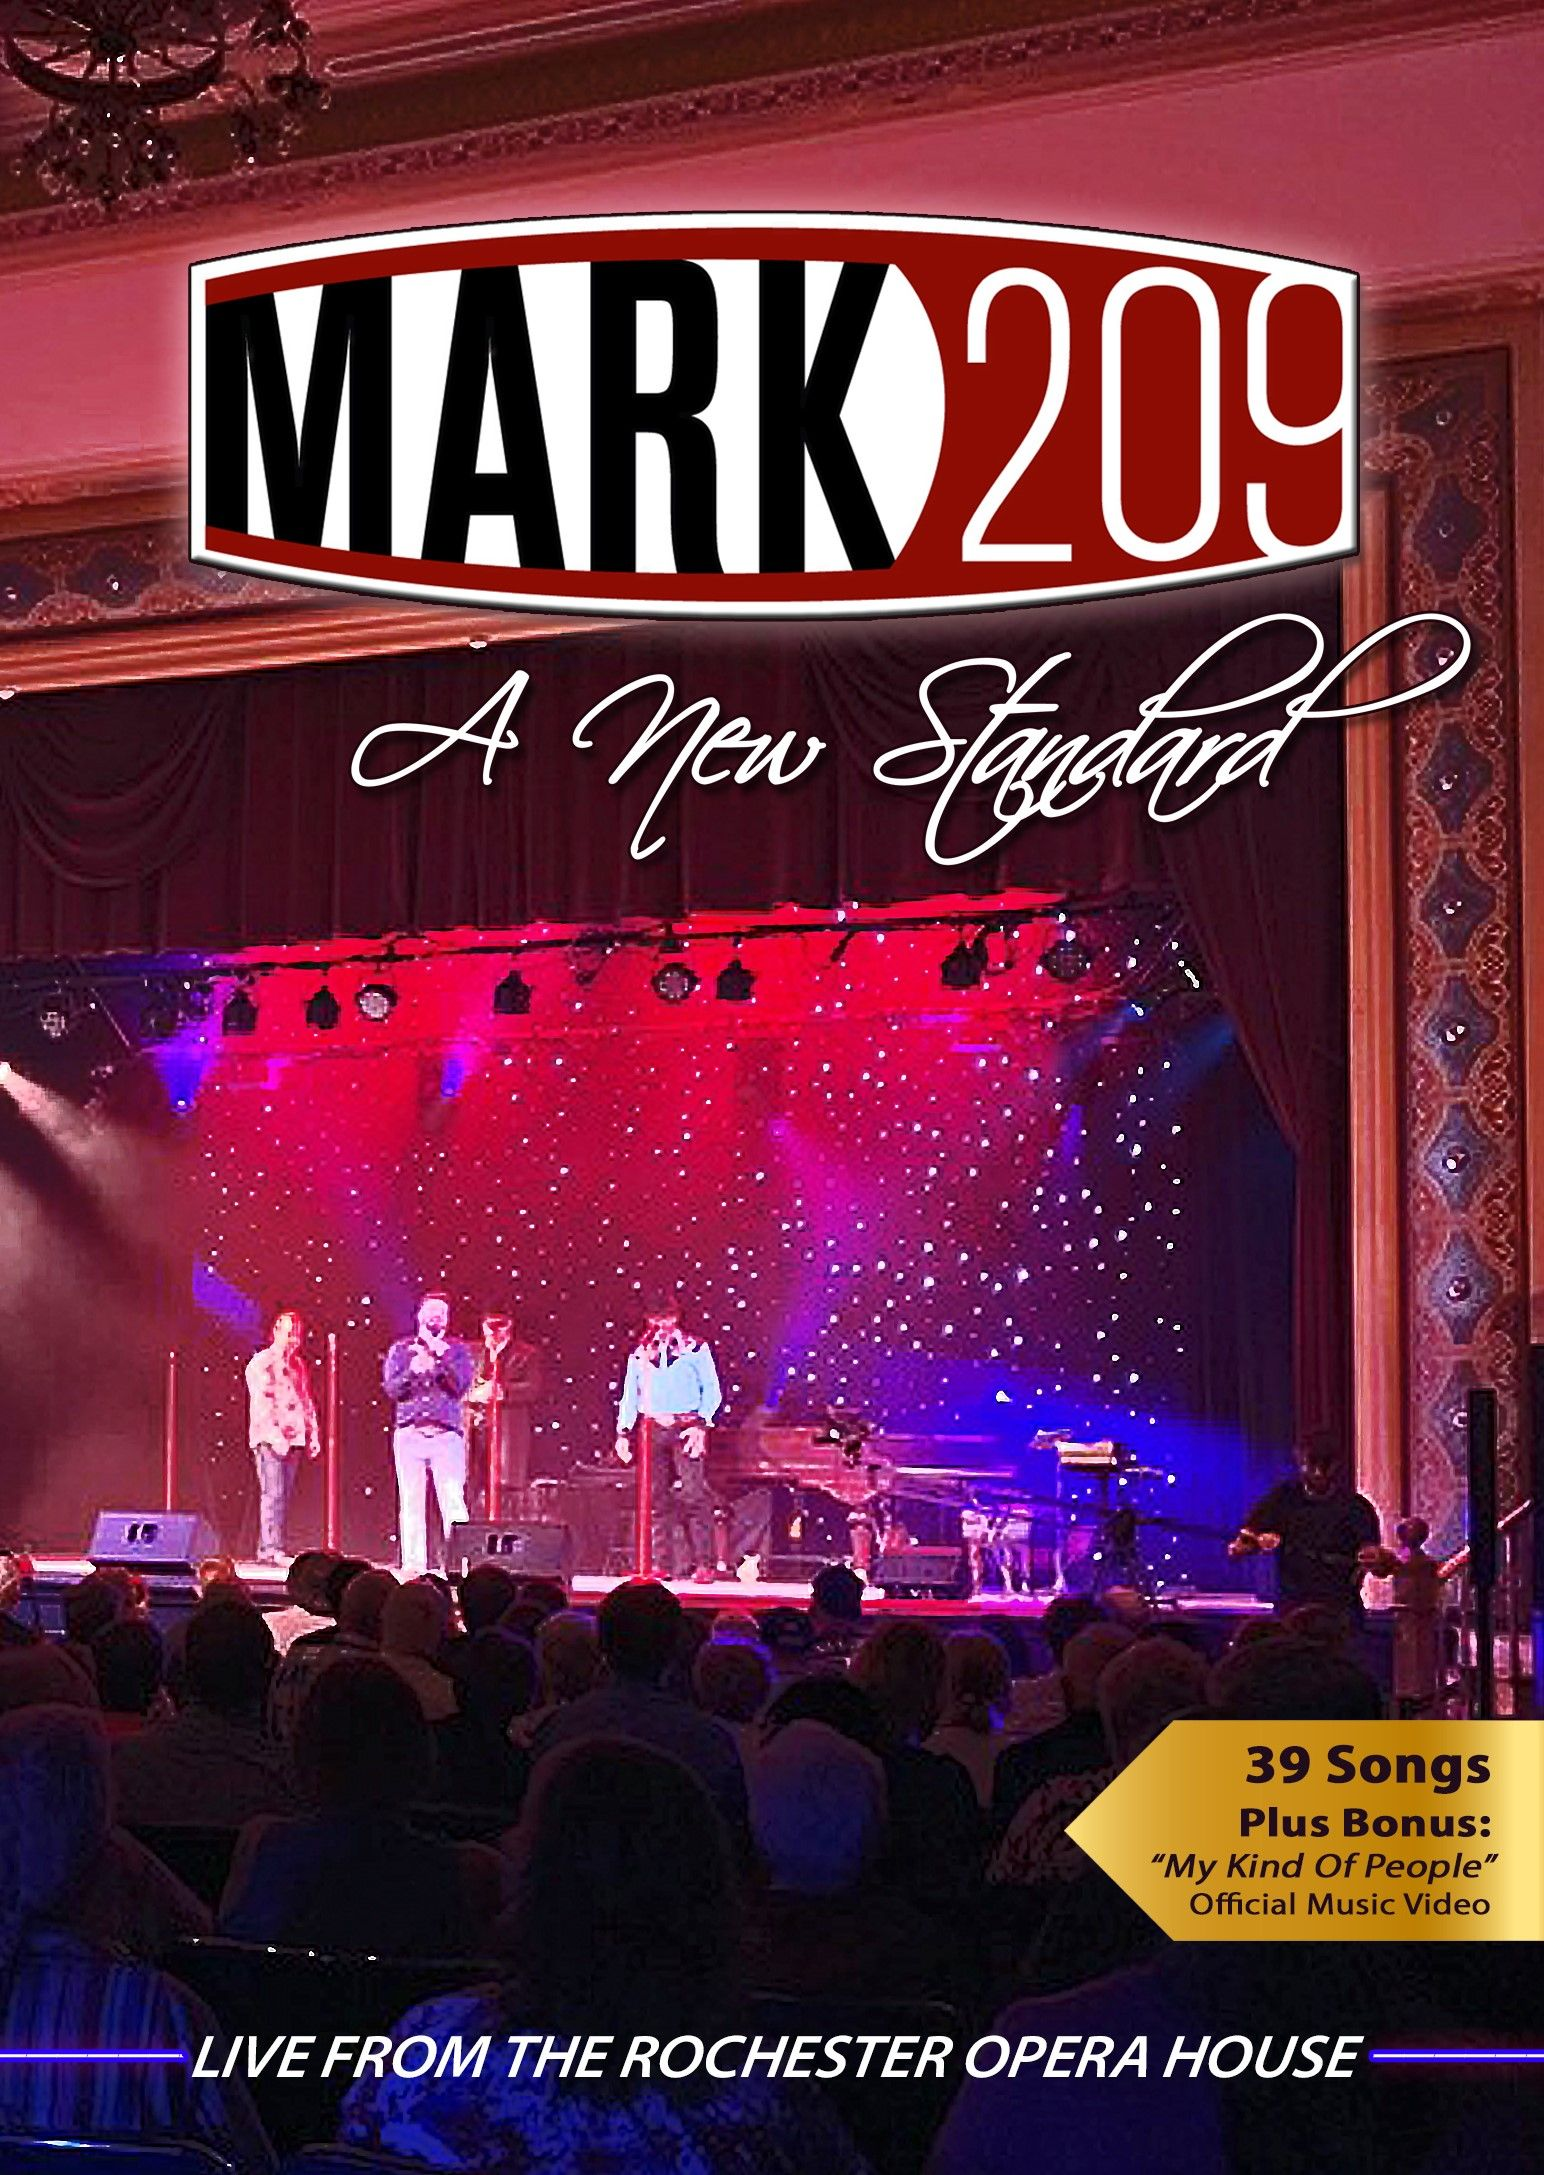 MARK209 Releases Live Concert Video